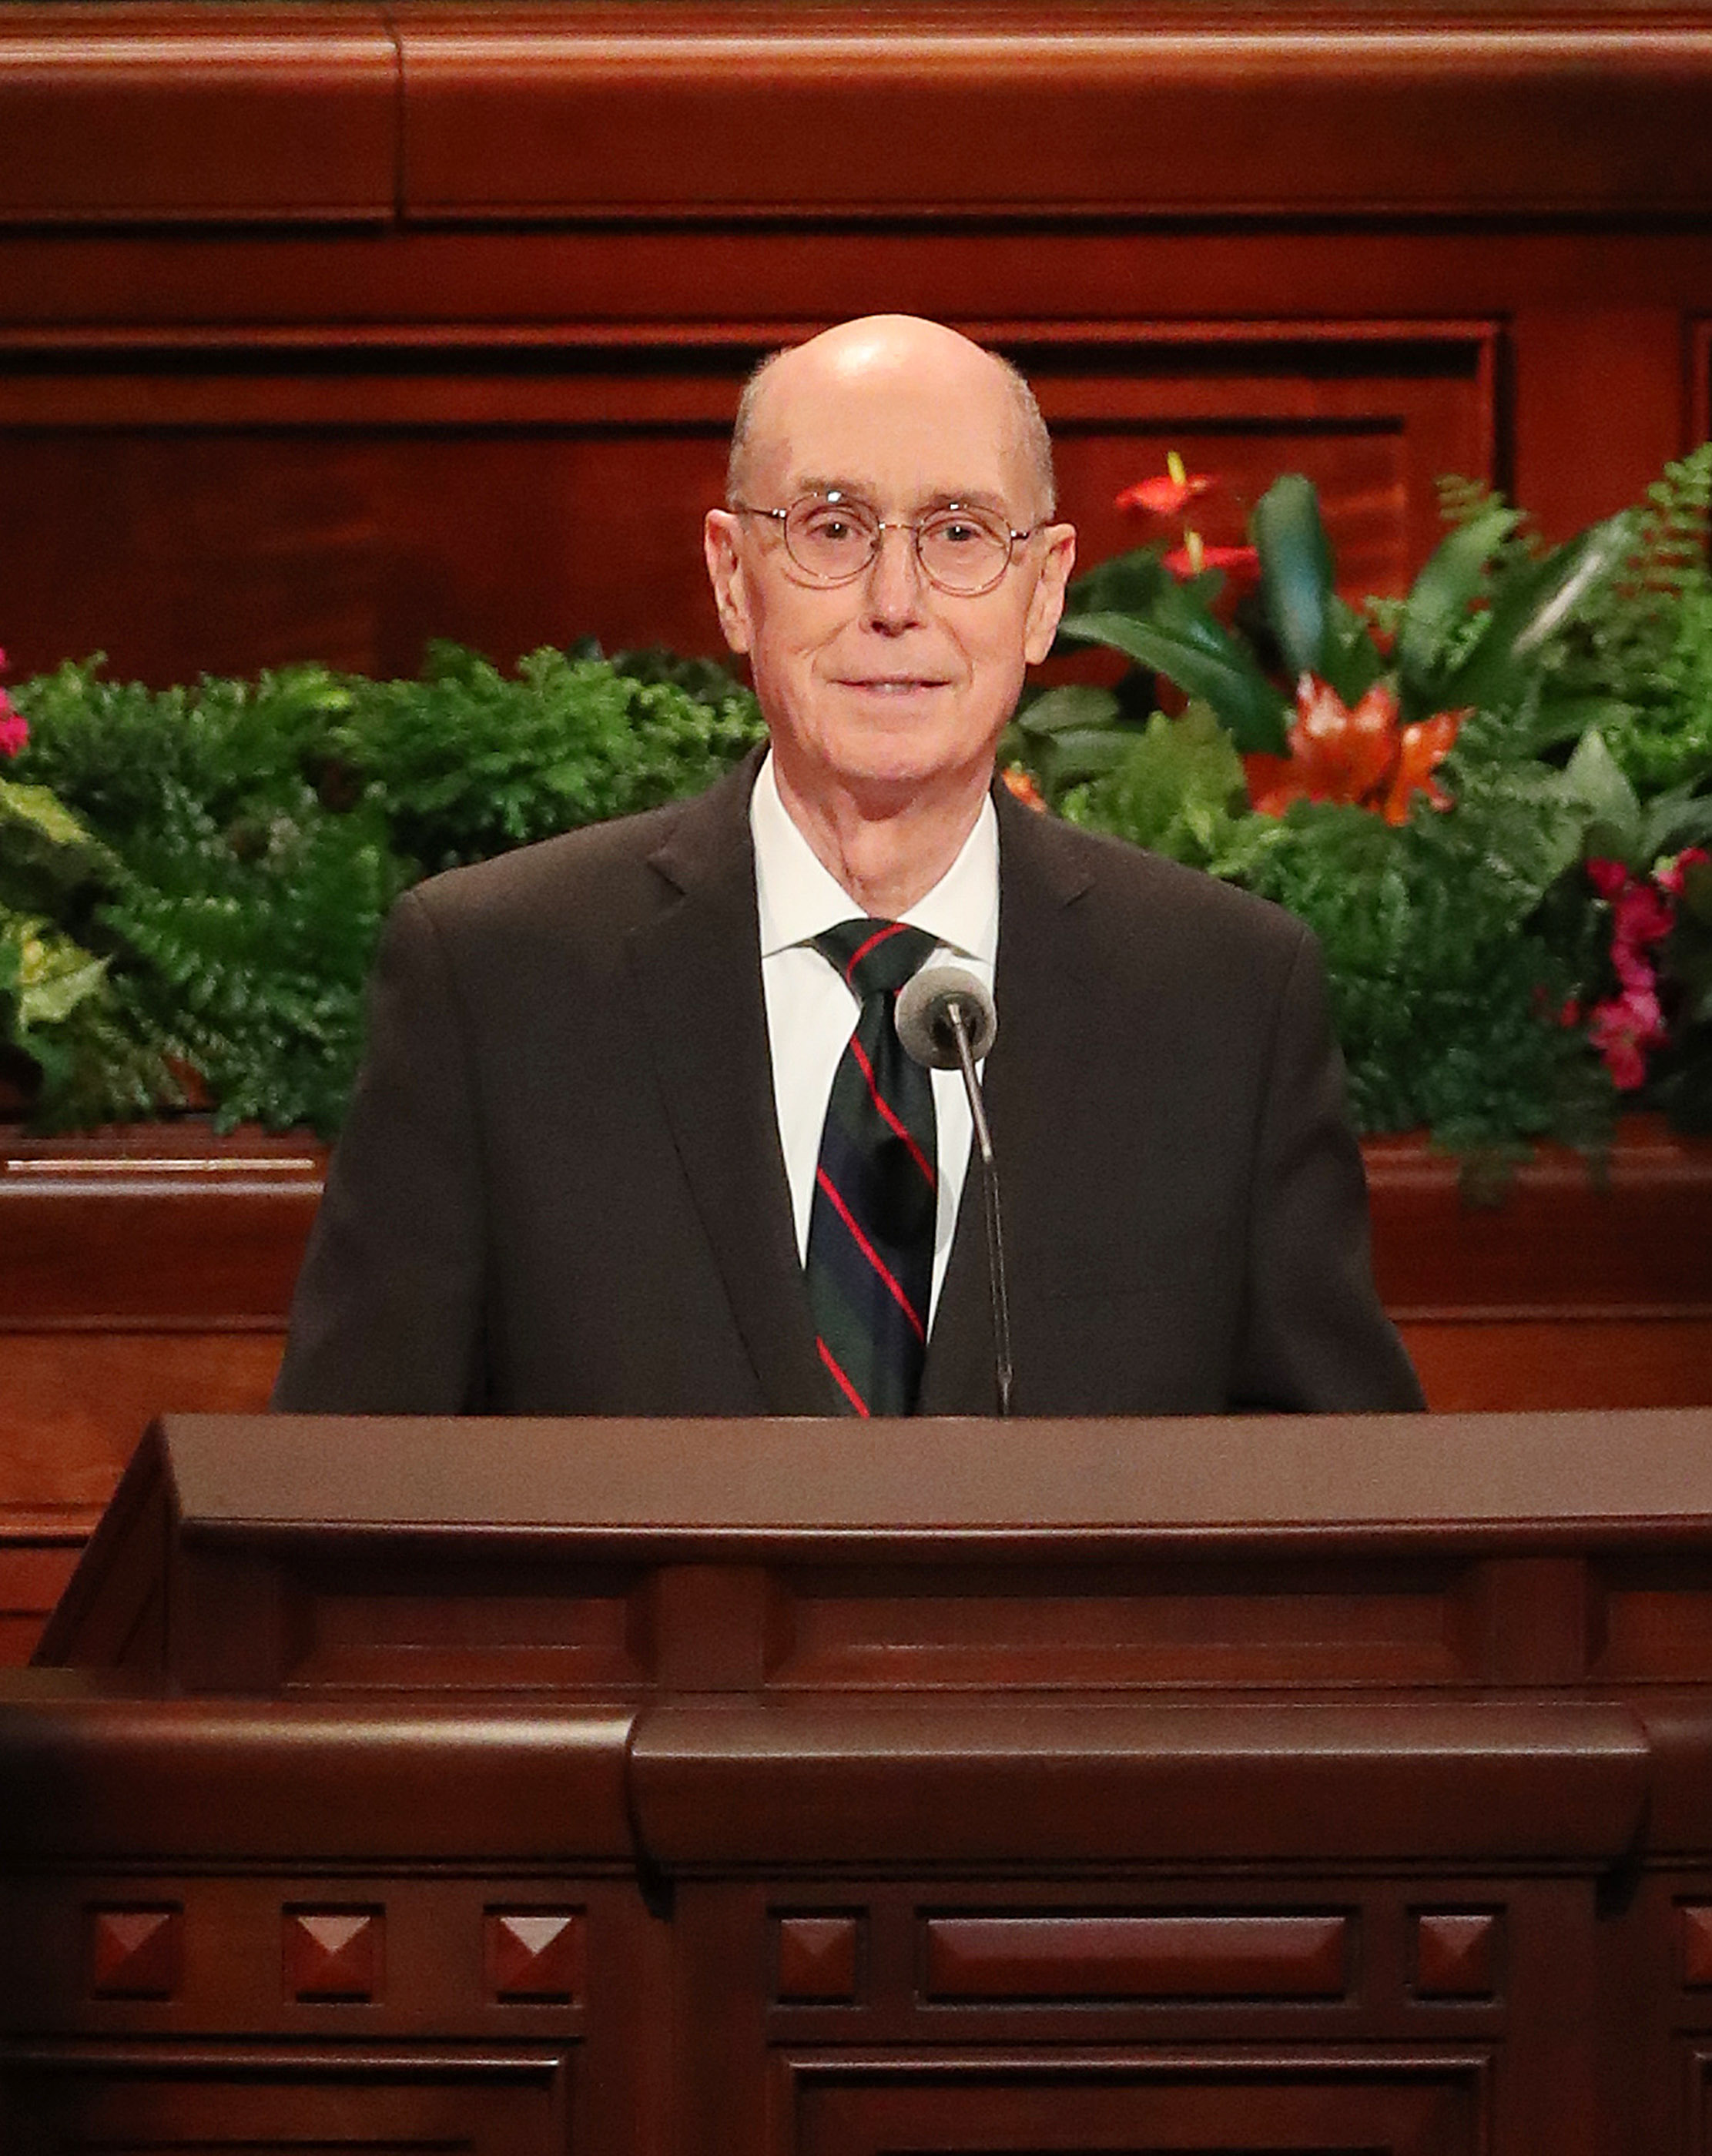 President Henry B. Eyring, second counselor in the First Presidency, speaks during the Sunday afternoon session of the 188th Semiannual General Conference of The Church of Jesus Christ of Latter-day Saints in the Conference Center in Salt Lake City on Sunday, Oct. 7, 2018.